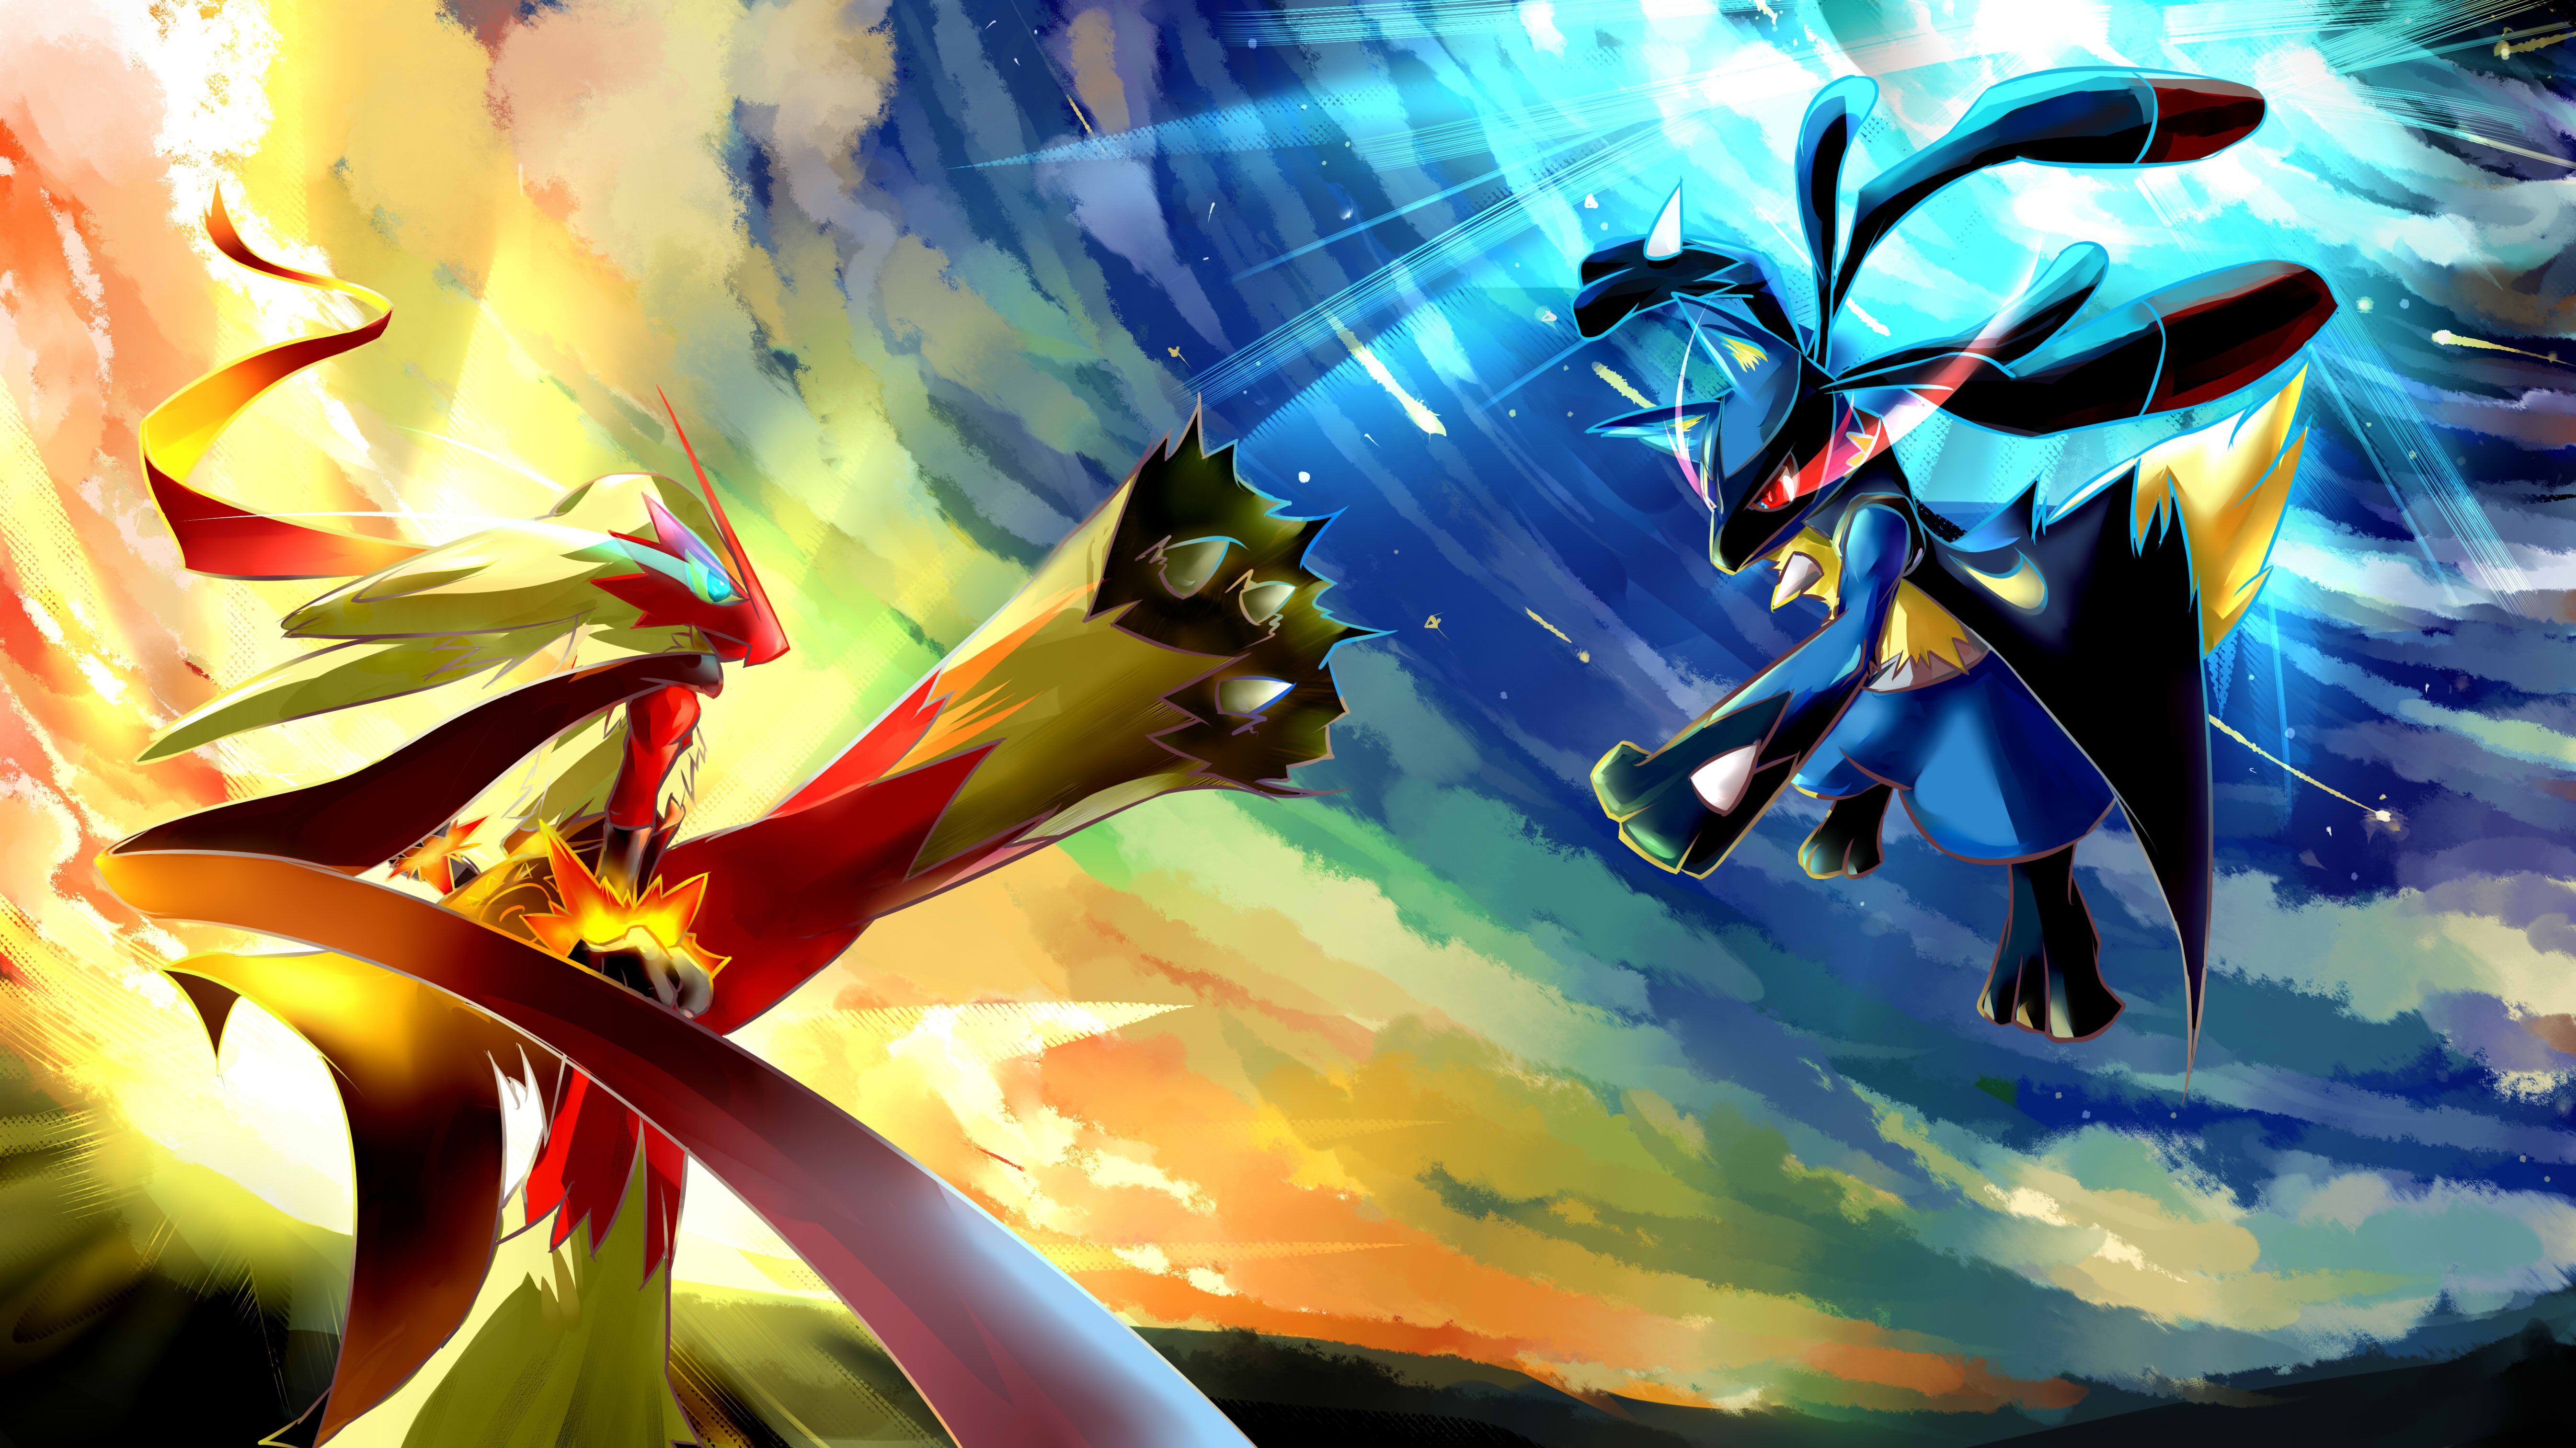 1539 Pokmon HD Wallpapers Background Images 5377x3023